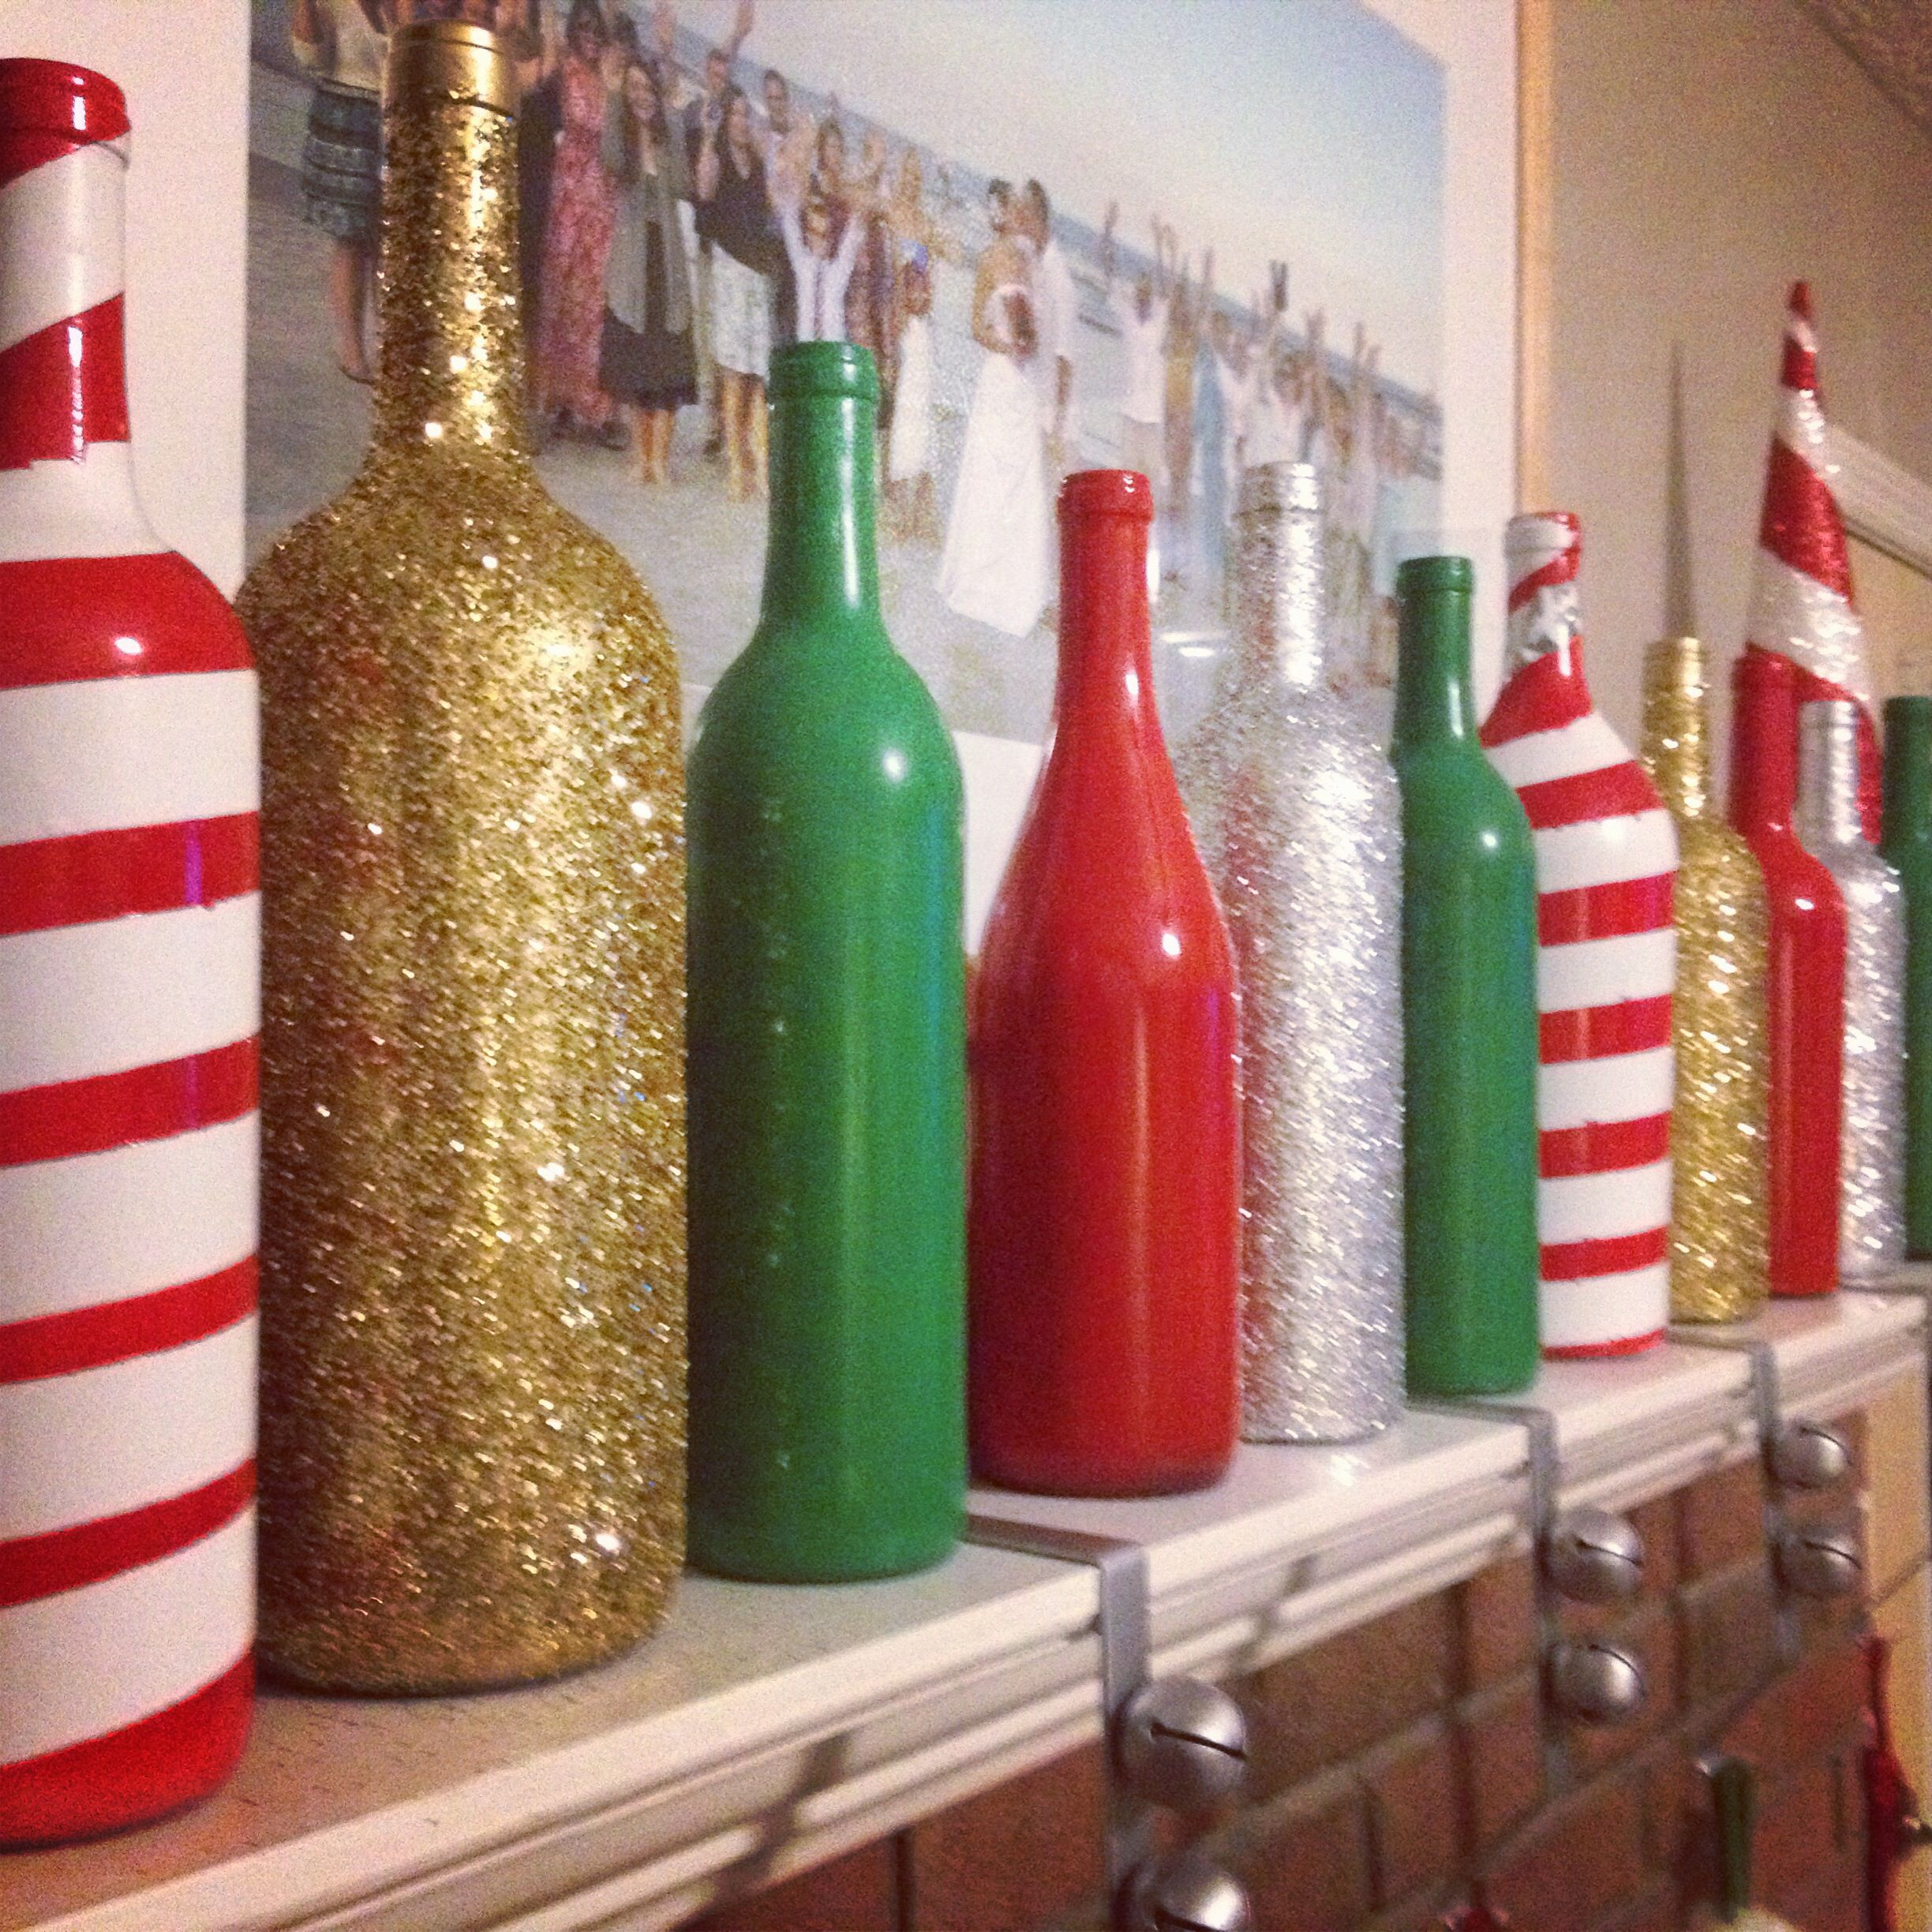 Pin By Bianca Nicole Snyder On Decorations Wine Bottle Decor Christmas Wine Bottles Wine Bottle Crafts